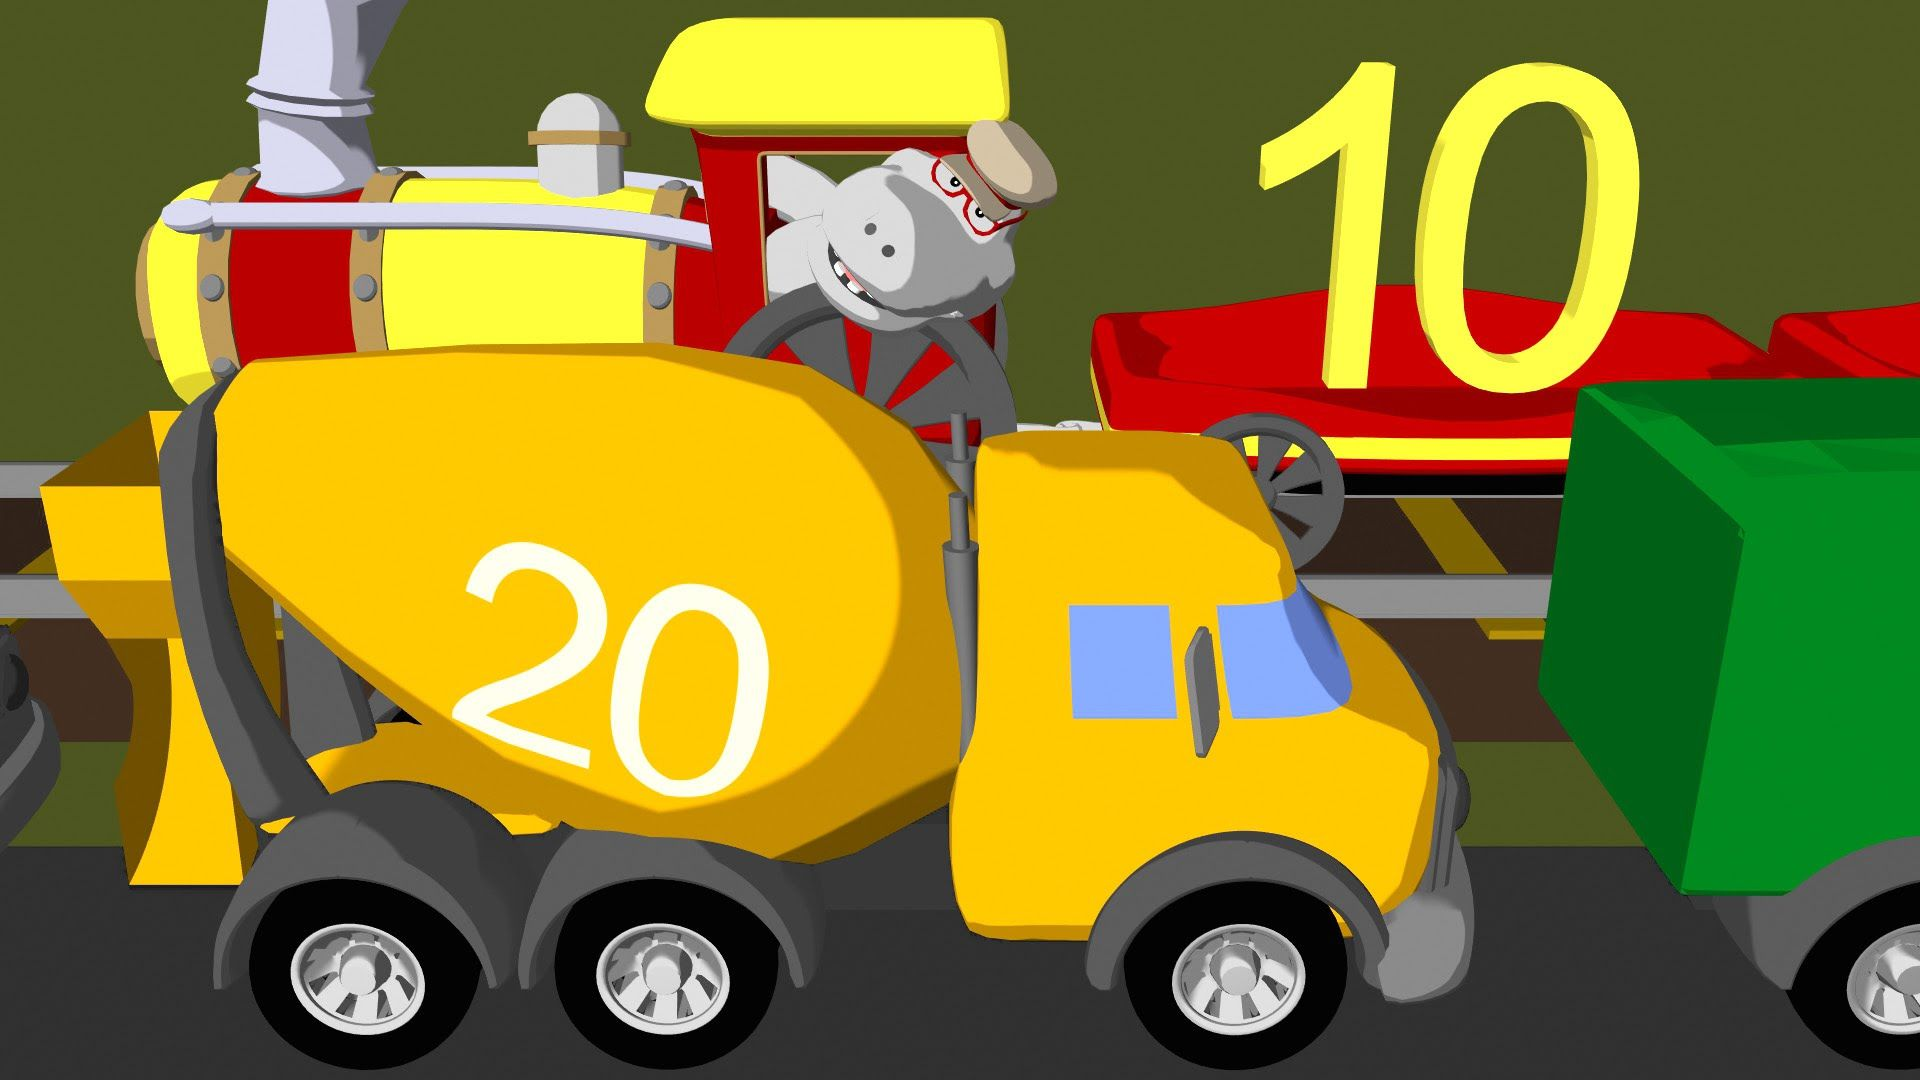 Counting by tens with trains & trucks - Learn numbers 10 to 100: http://youtu.be/oZO1wqU_W2k